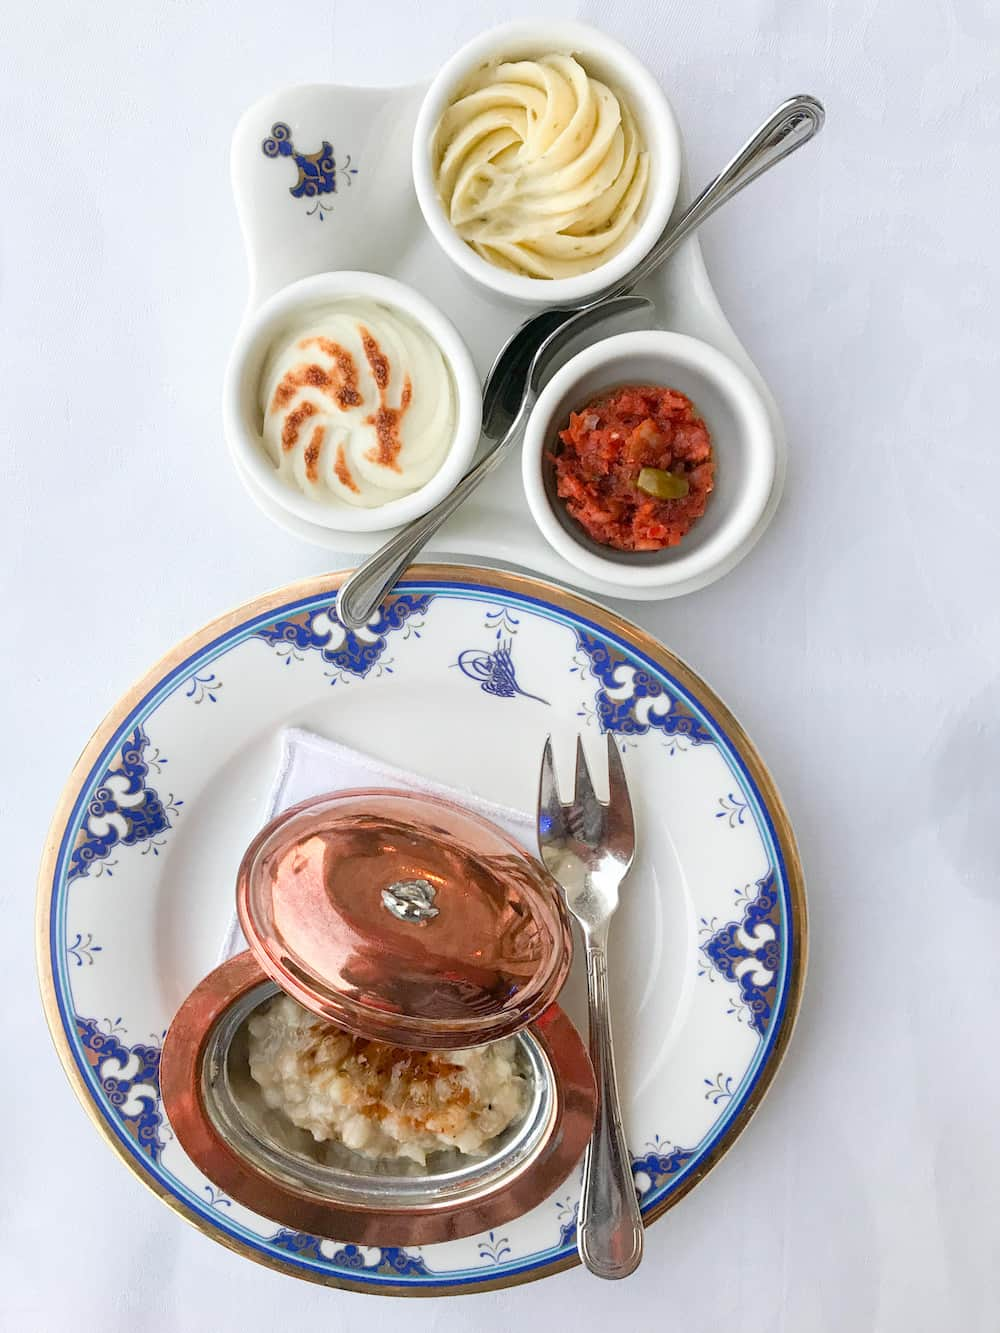 Specially designed plates incorporate a motif based on the Ottoman sultans' imperial seal.